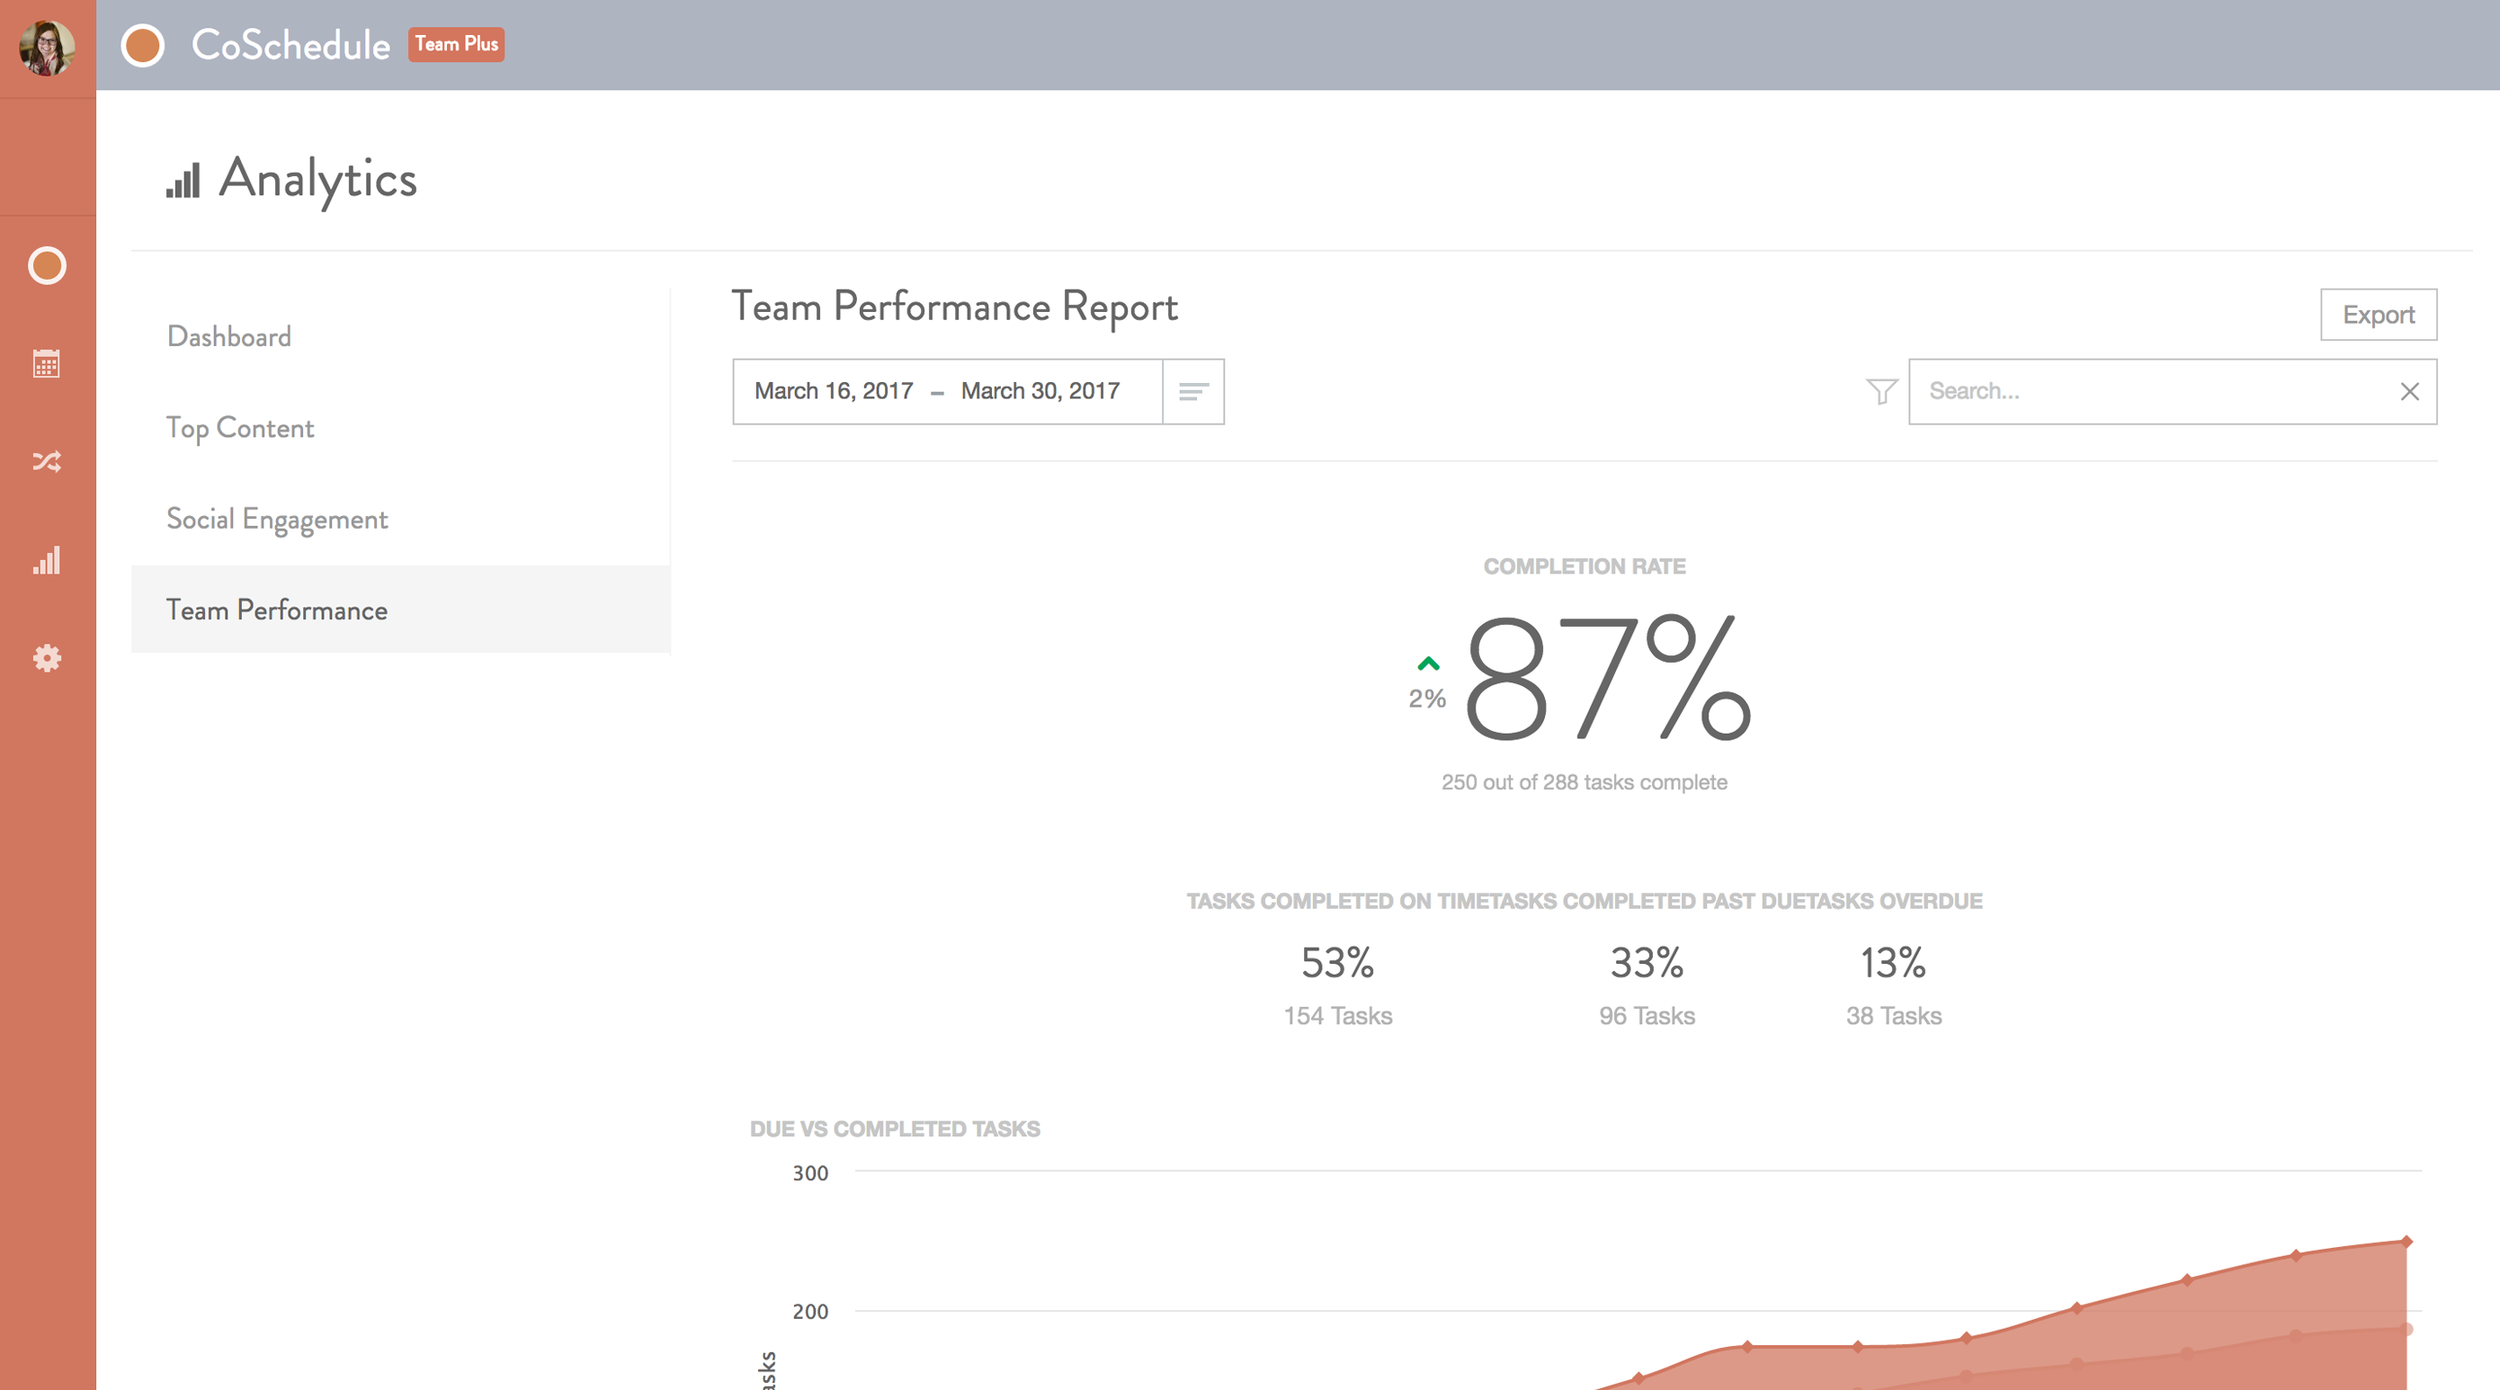 coschedule team performance analytics // 30 day coschedule trial // easy social media management // Social media content calendar // Social media strategy // social media marketing calendar // automate postings on a schedule // posting with coschedule // home business // entrepreneur help